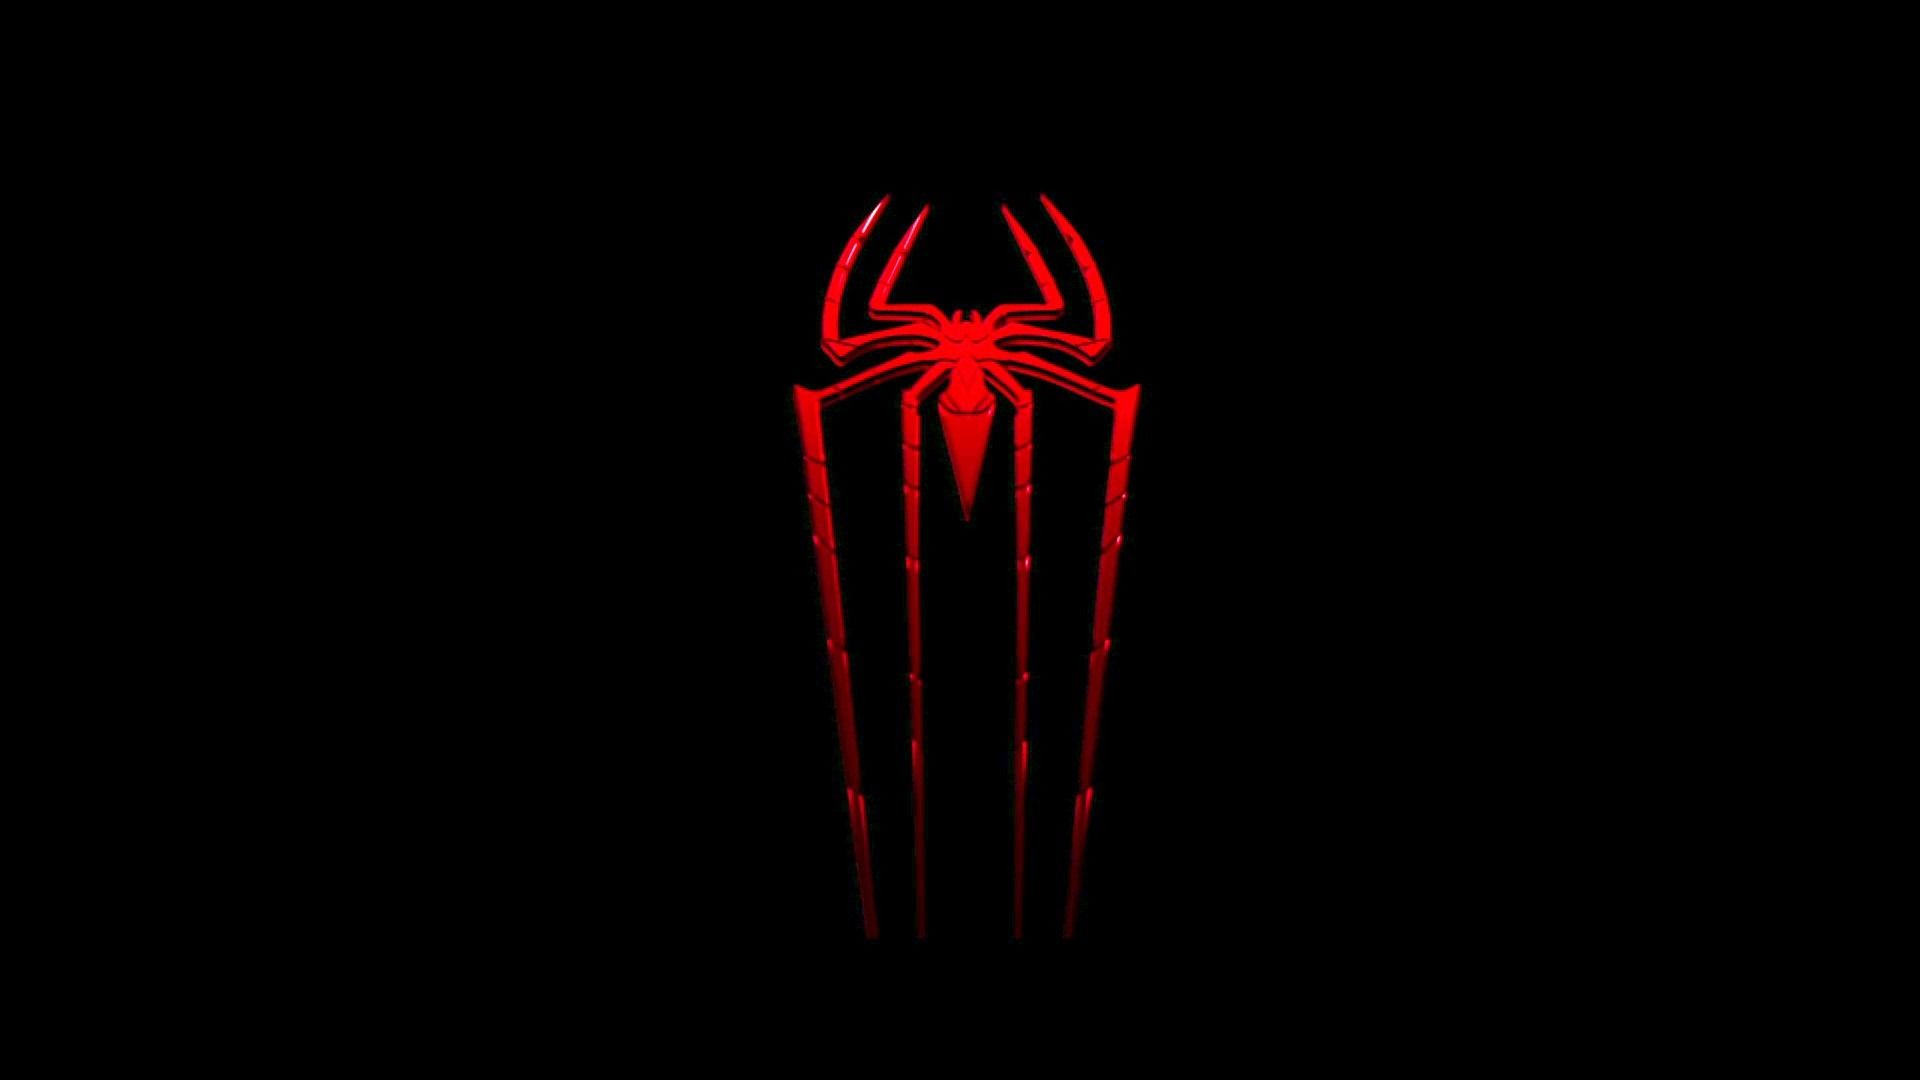 Spiderman Logo Wallpaper HD Resolution DjV